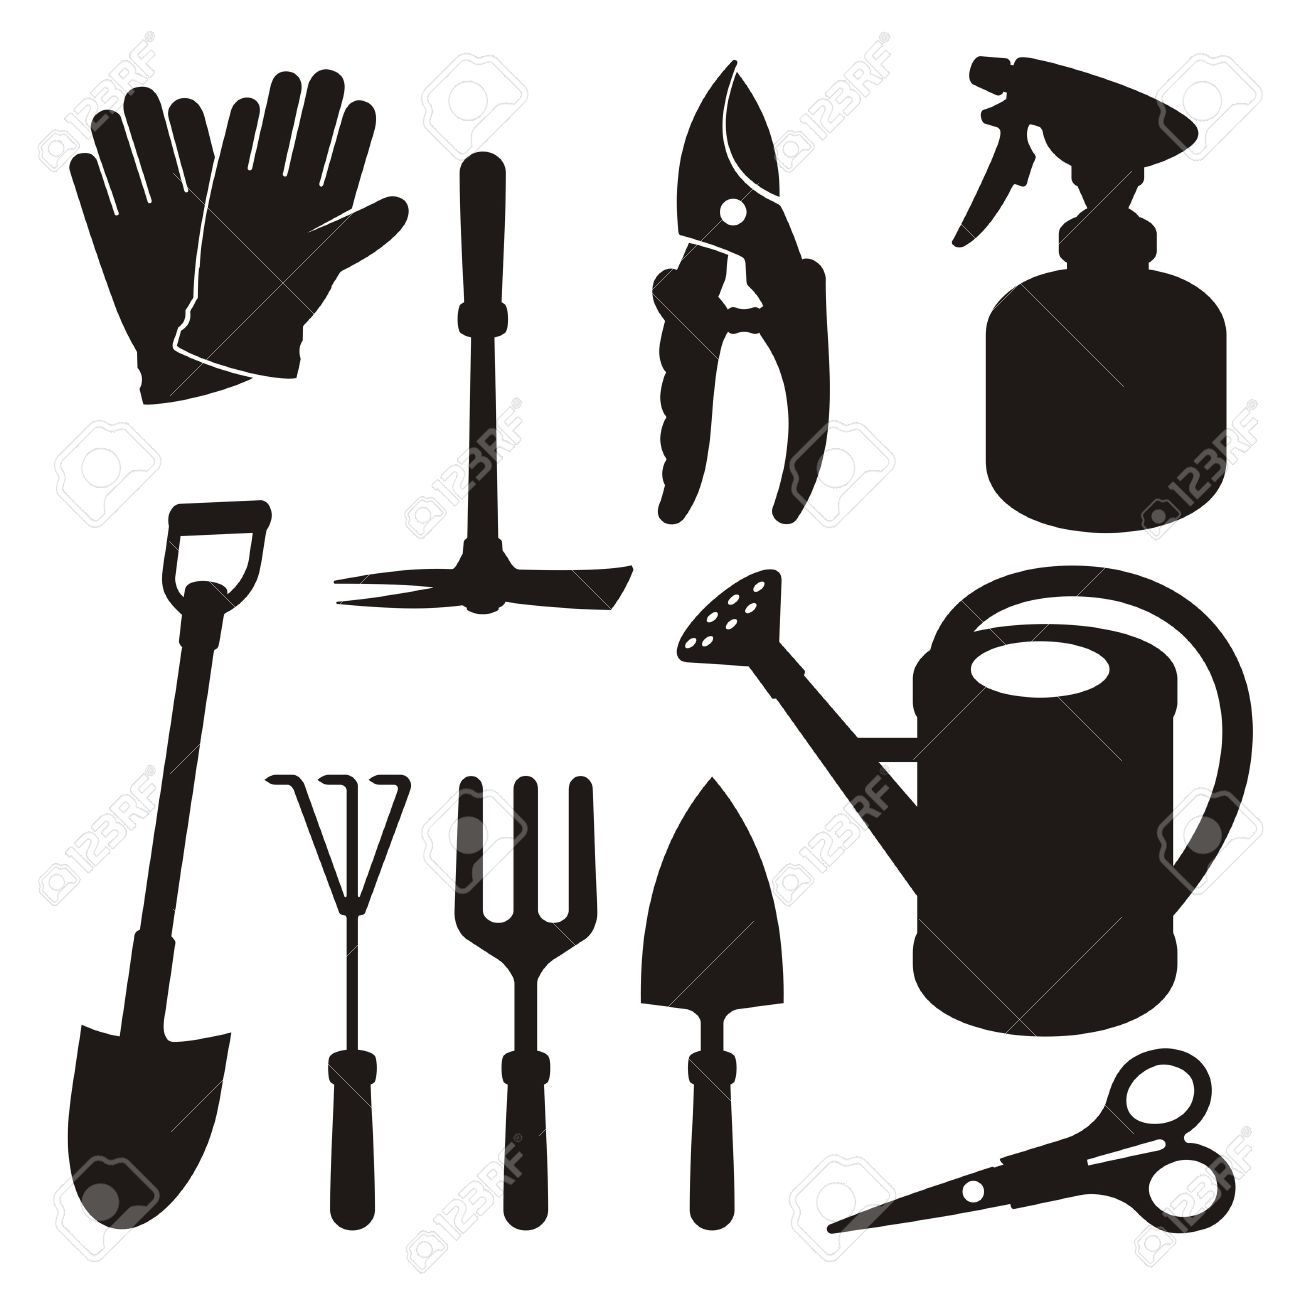 Gardening tools stock illustrations cliparts and royalty for Gardening tools cartoon